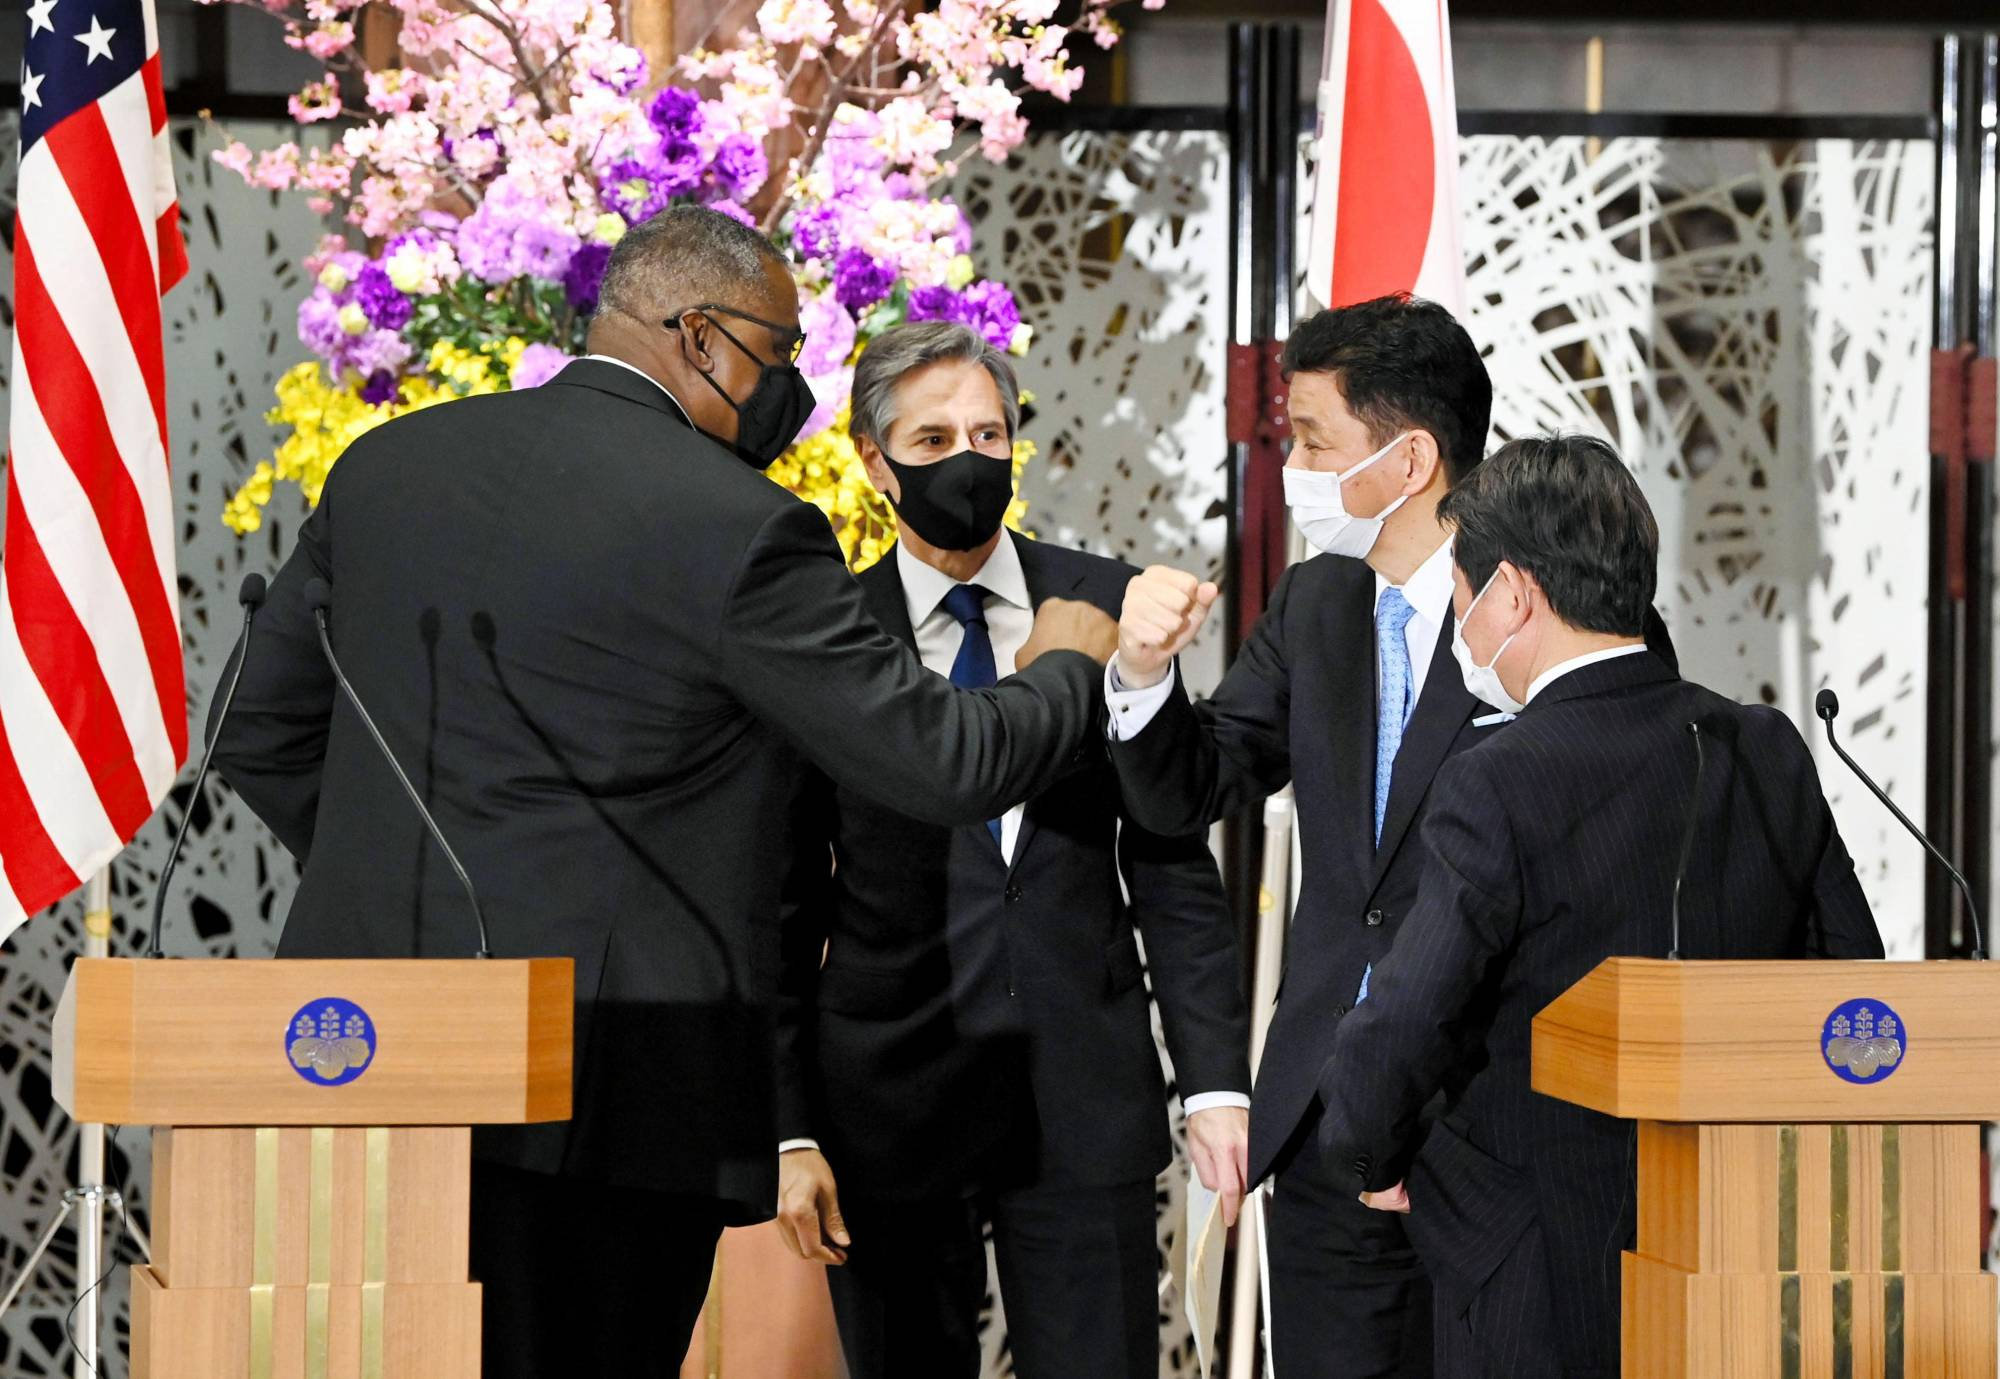 U.S. Defense Secretary Lloyd Austin (left) and Defense Minister Nobuo Kishi (second from right) do elbow bumps following a joint news conference in Tokyo on Tuesday.   POOL / VIA KYODO